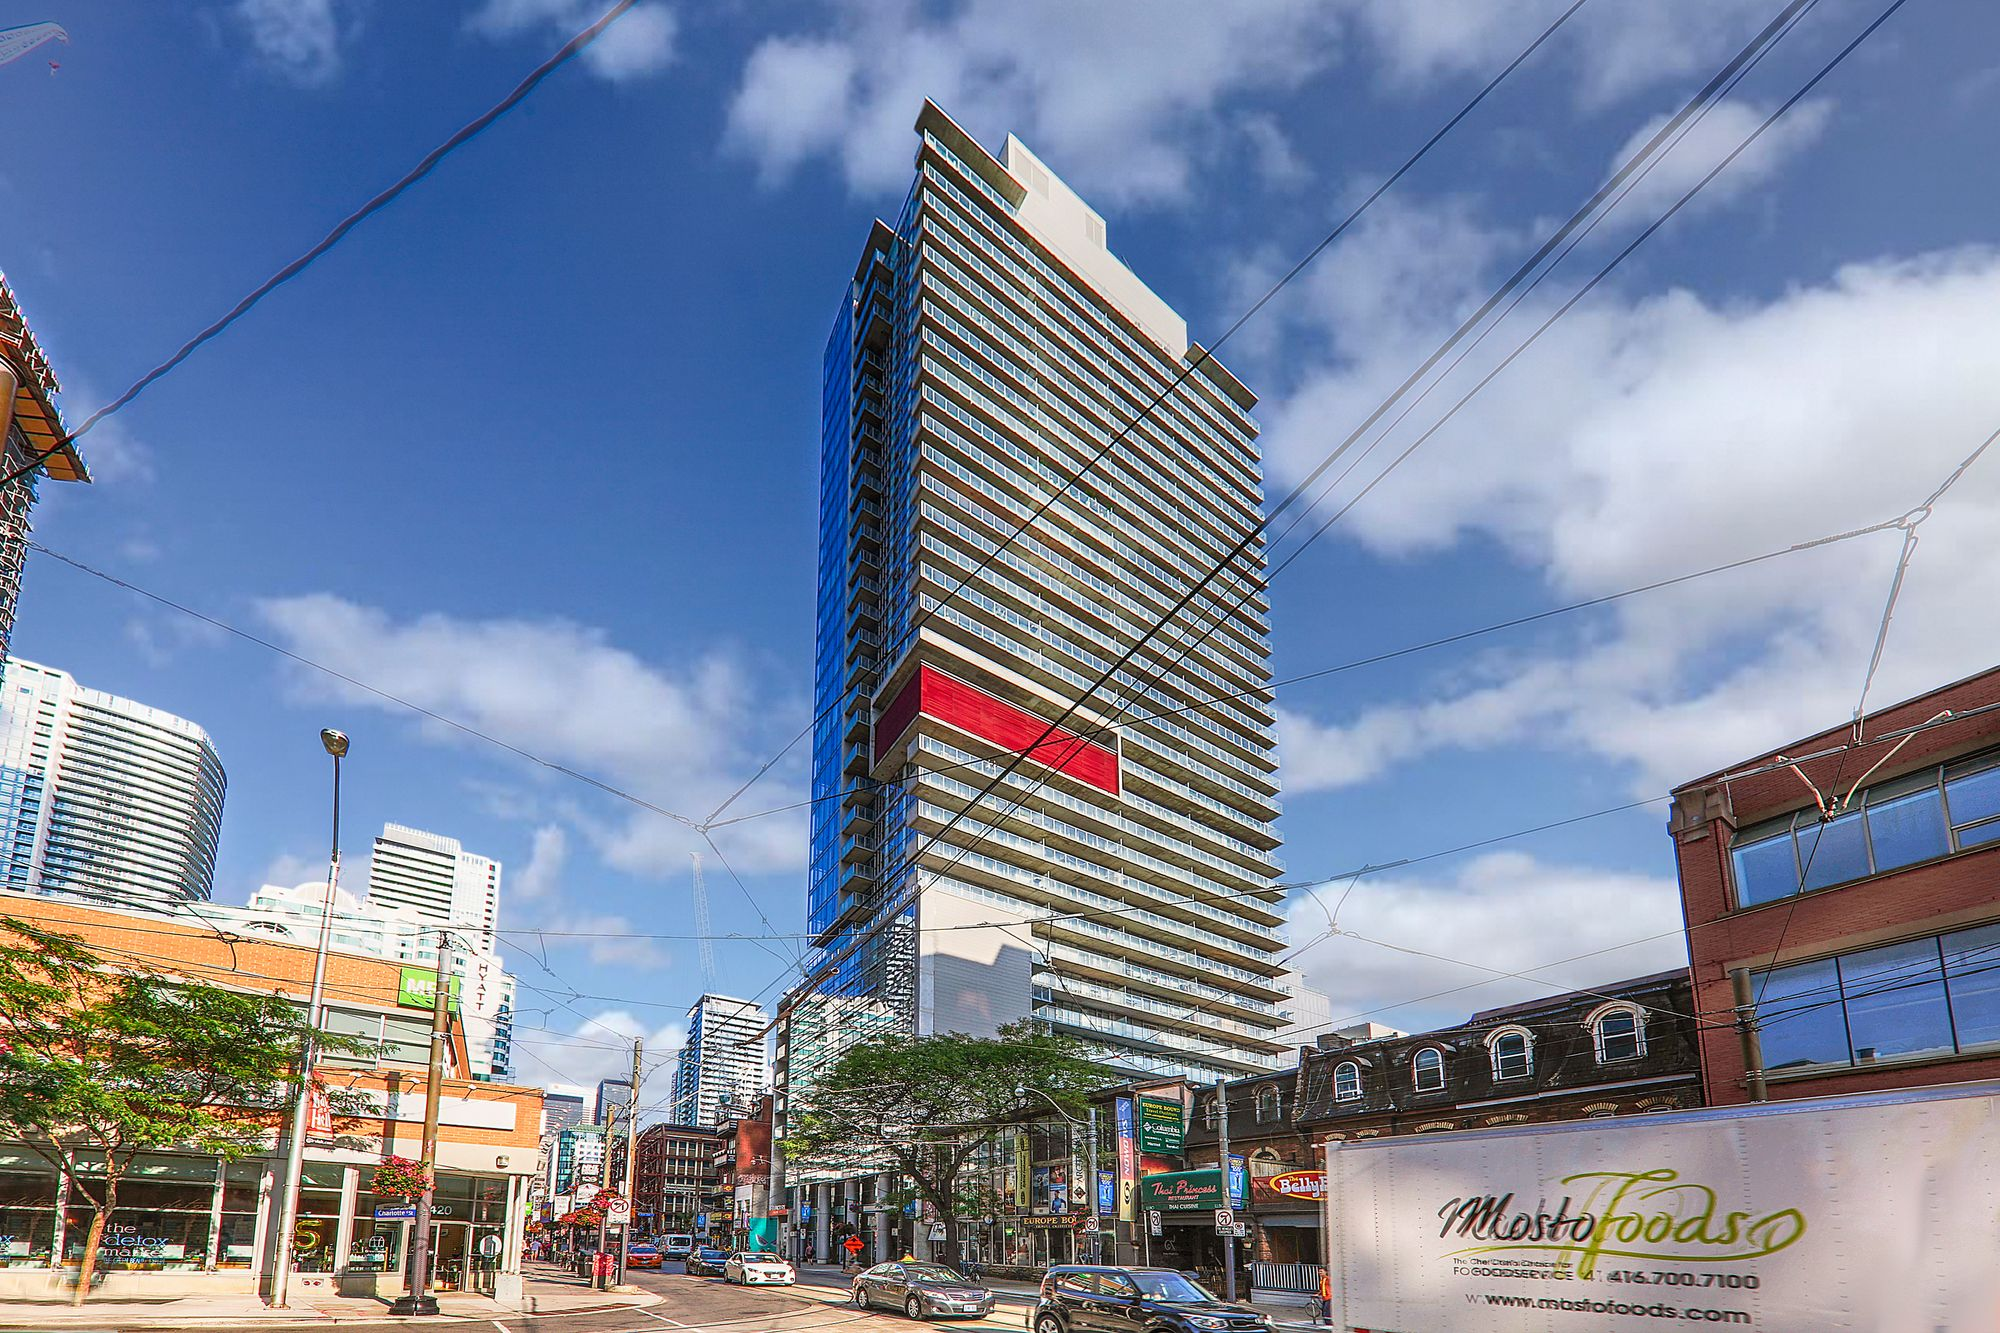 375 King St W. This condo at M5V Condos is located in  Downtown, Toronto - image #1 of 4 by Strata.ca